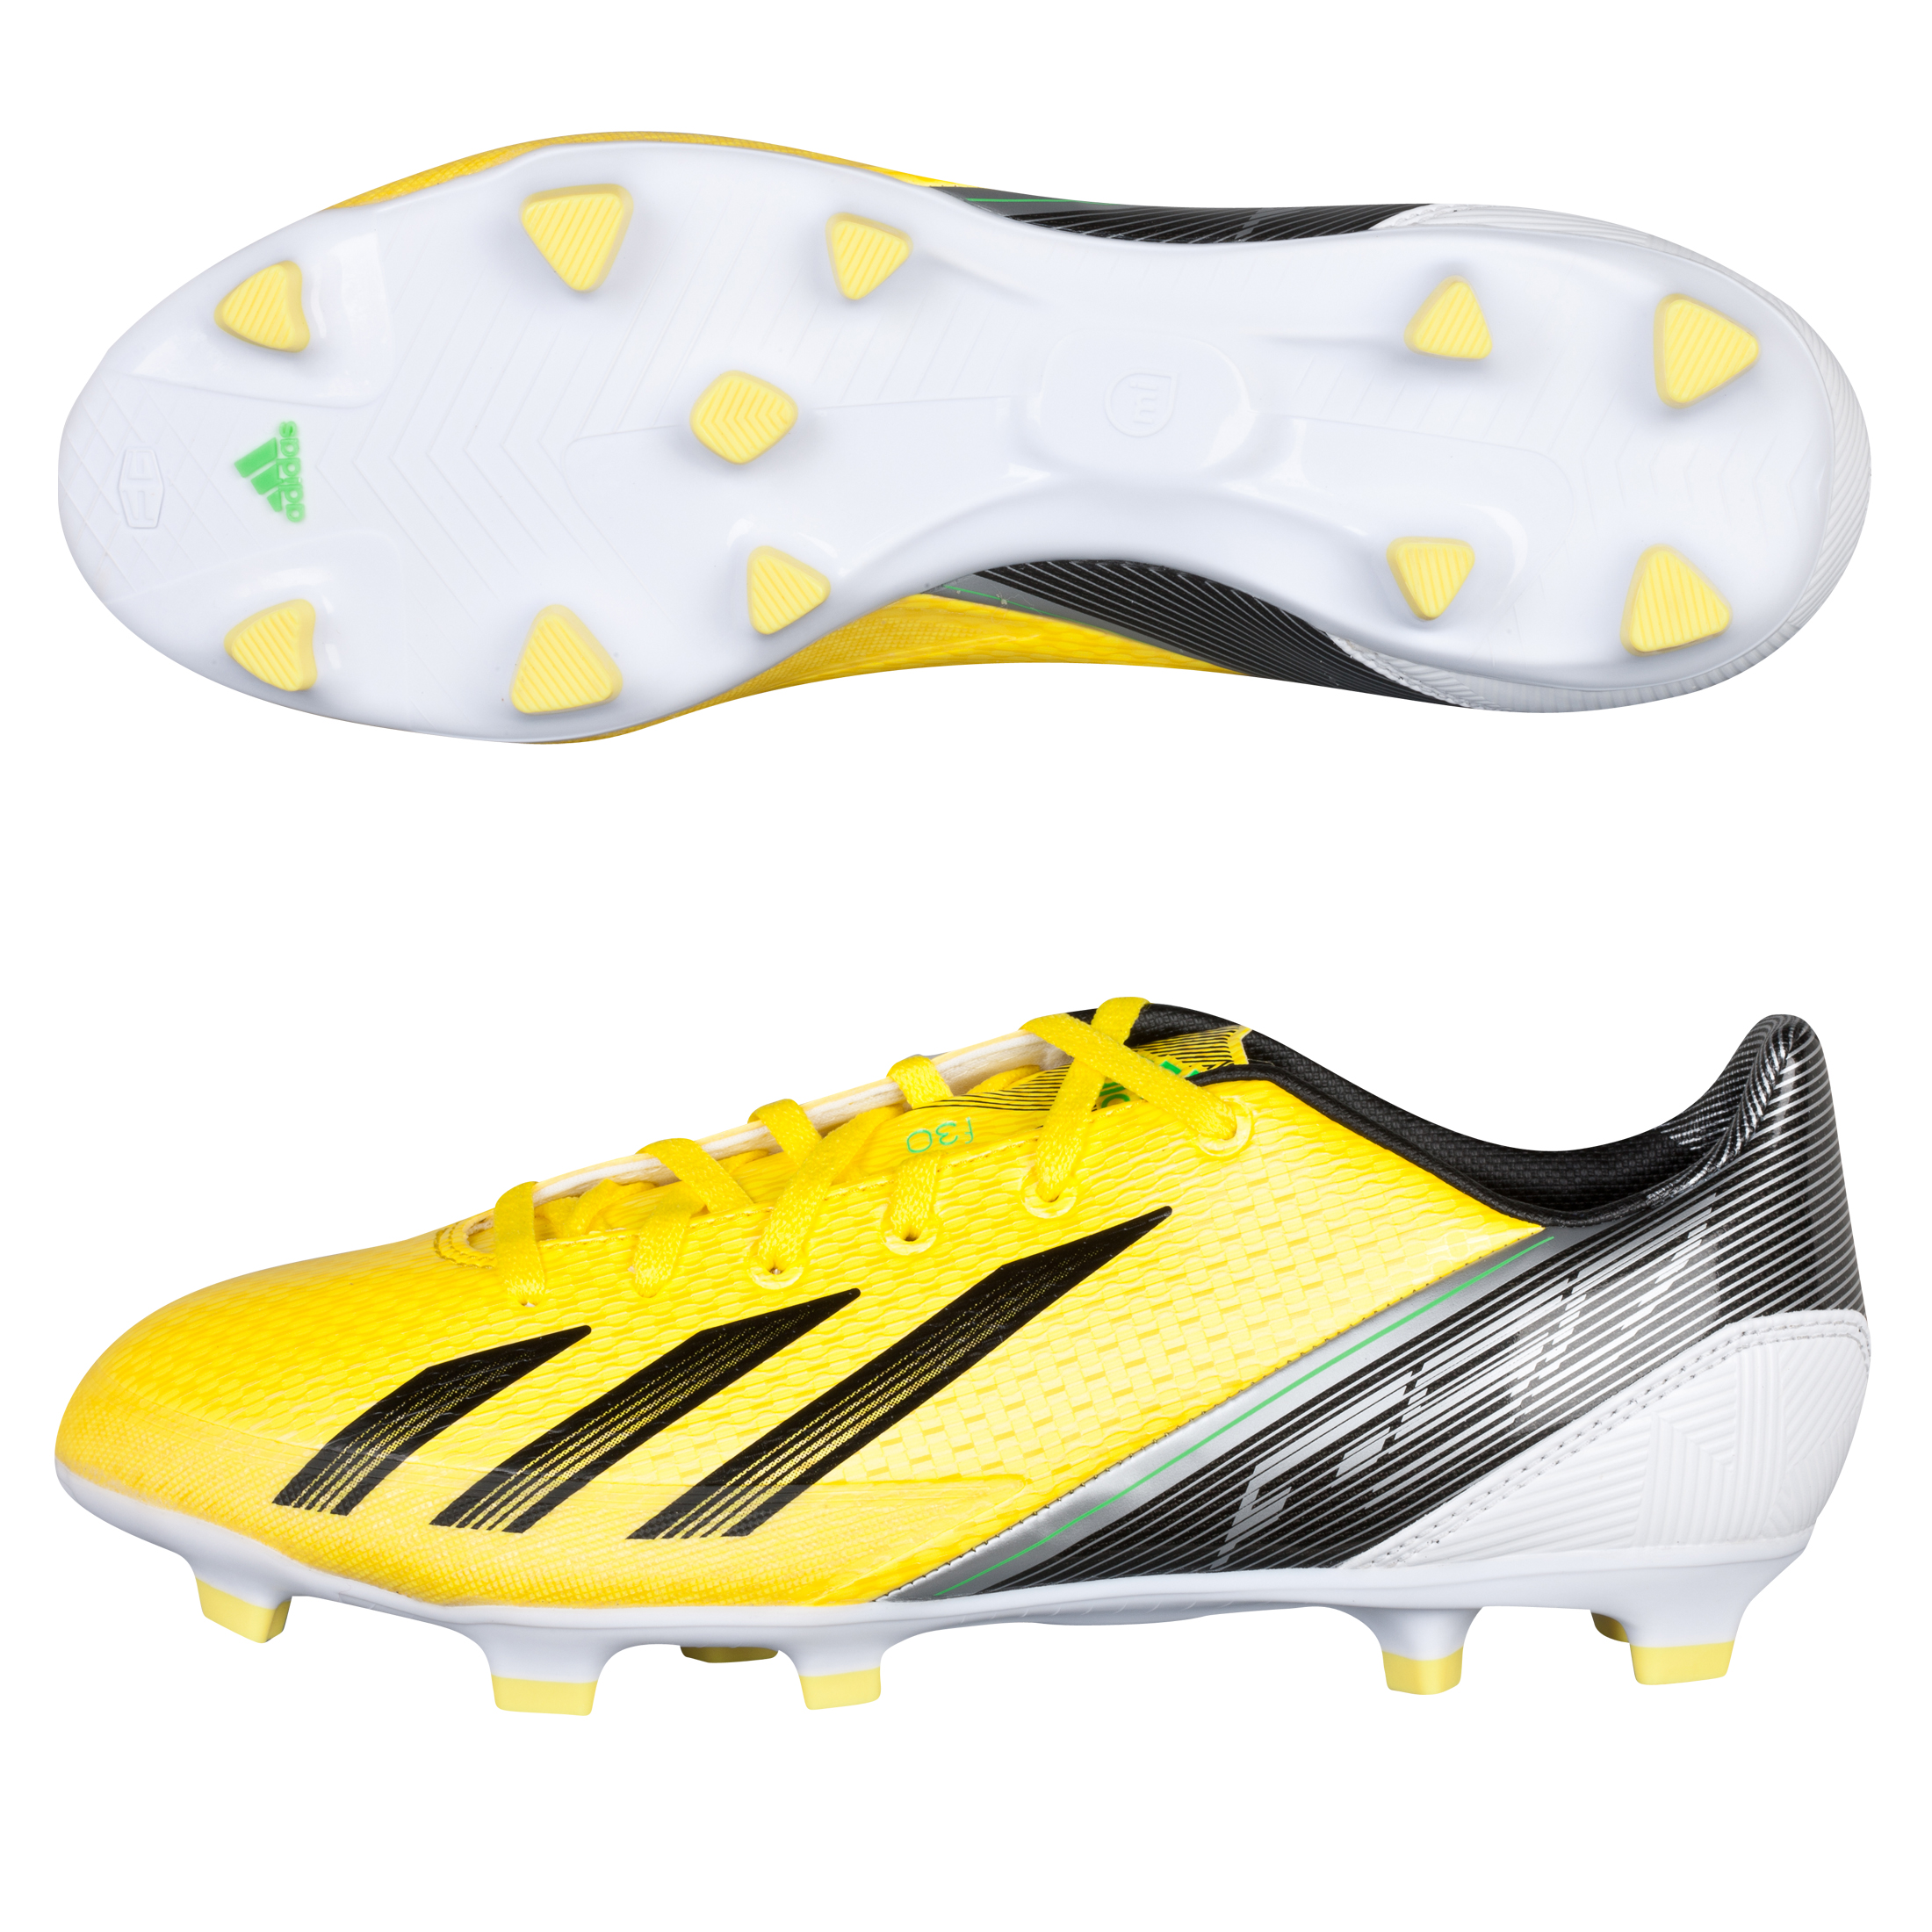 adidas AdiZero F30 TRX Firm Ground Football Boots - Vivid Yellow/Black/Green Zest